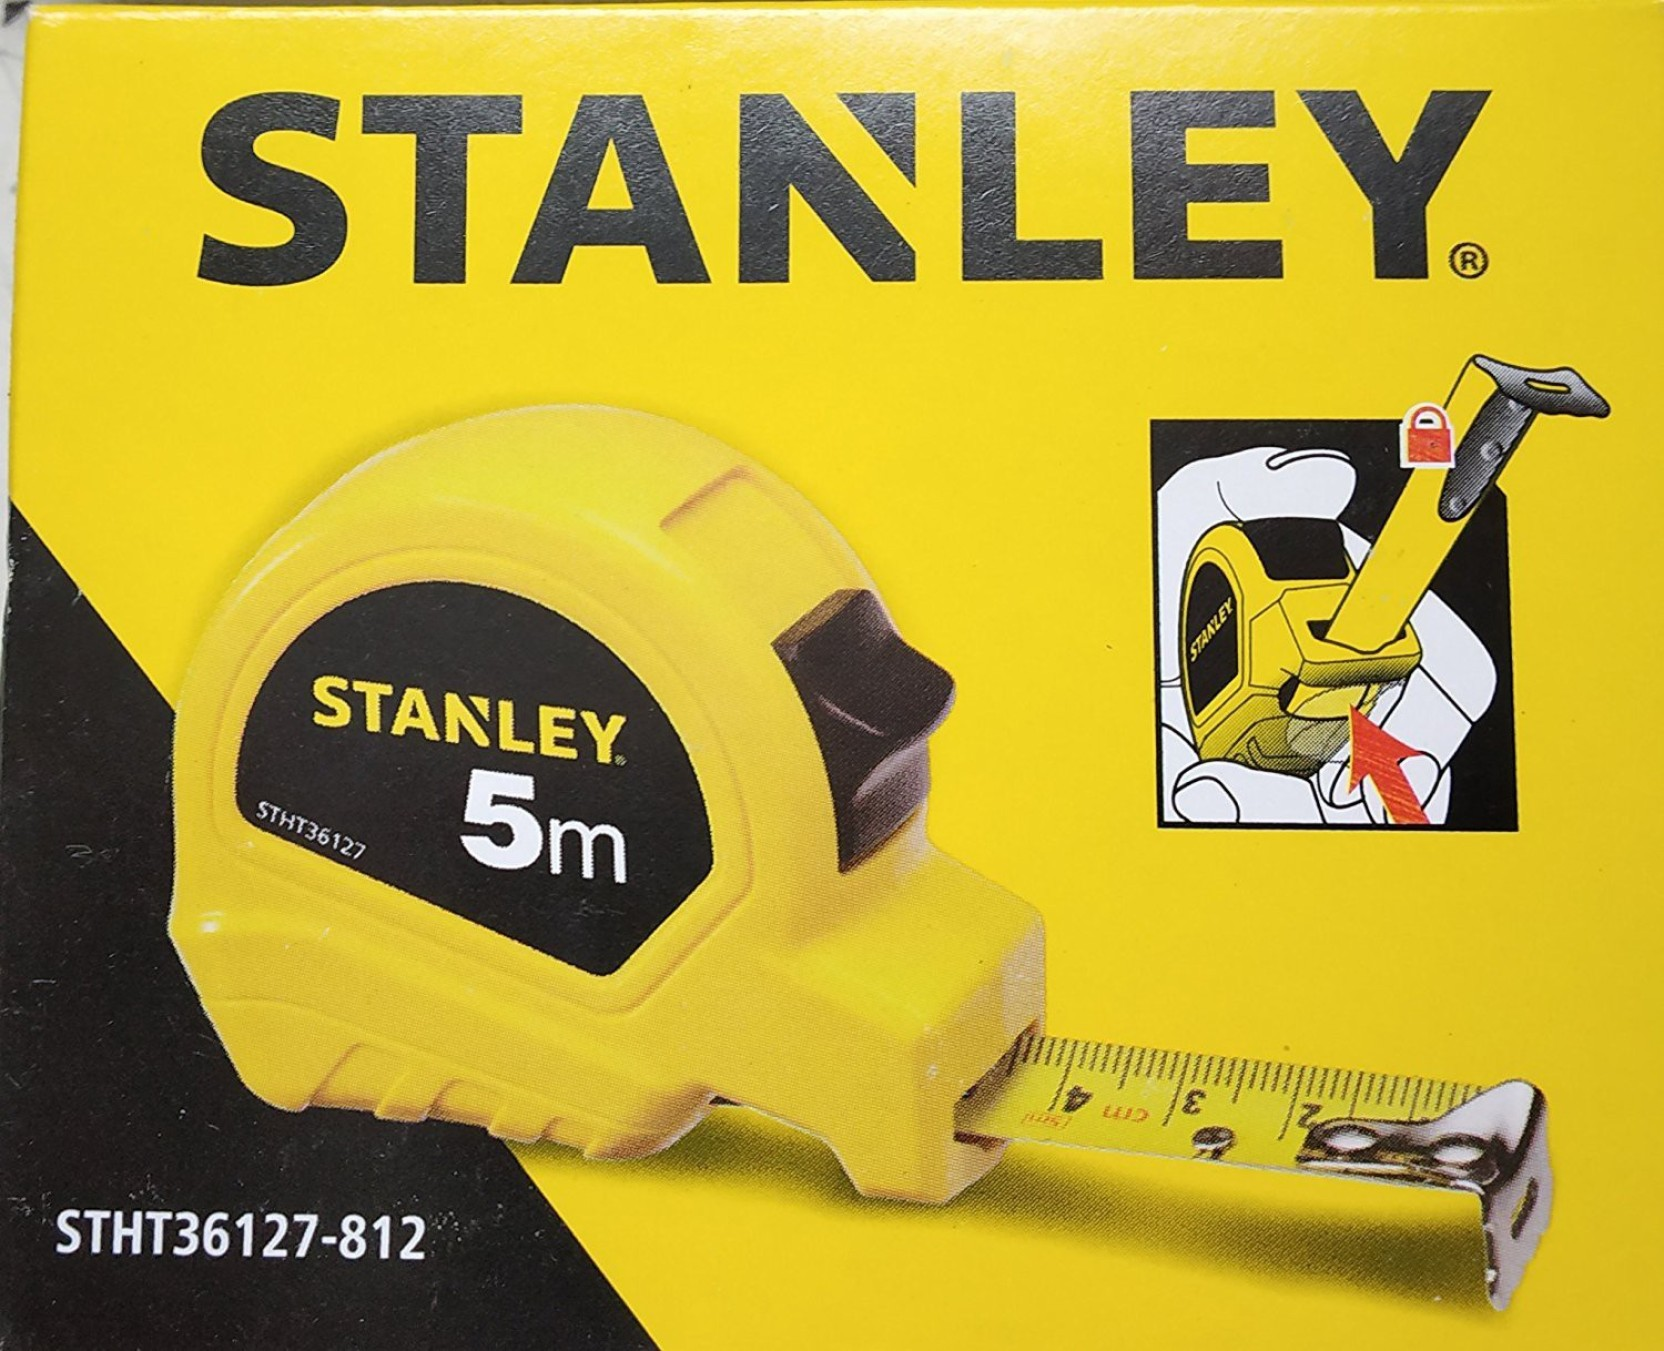 Stanley Stht36127 812 5 M Tape Measurement Price In India Buy Basic 5m 16 Add To Cart